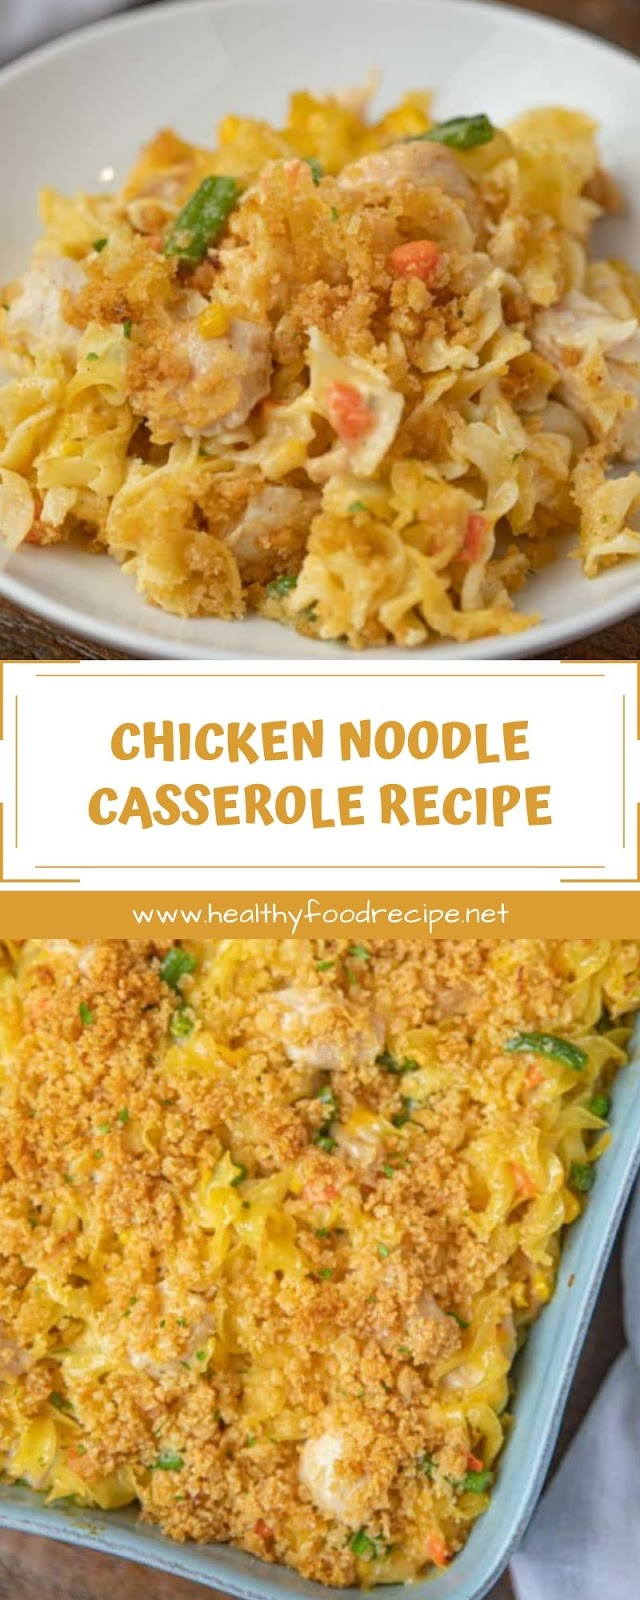 CHICKEN NOODLE CASSEROLE RECIPE